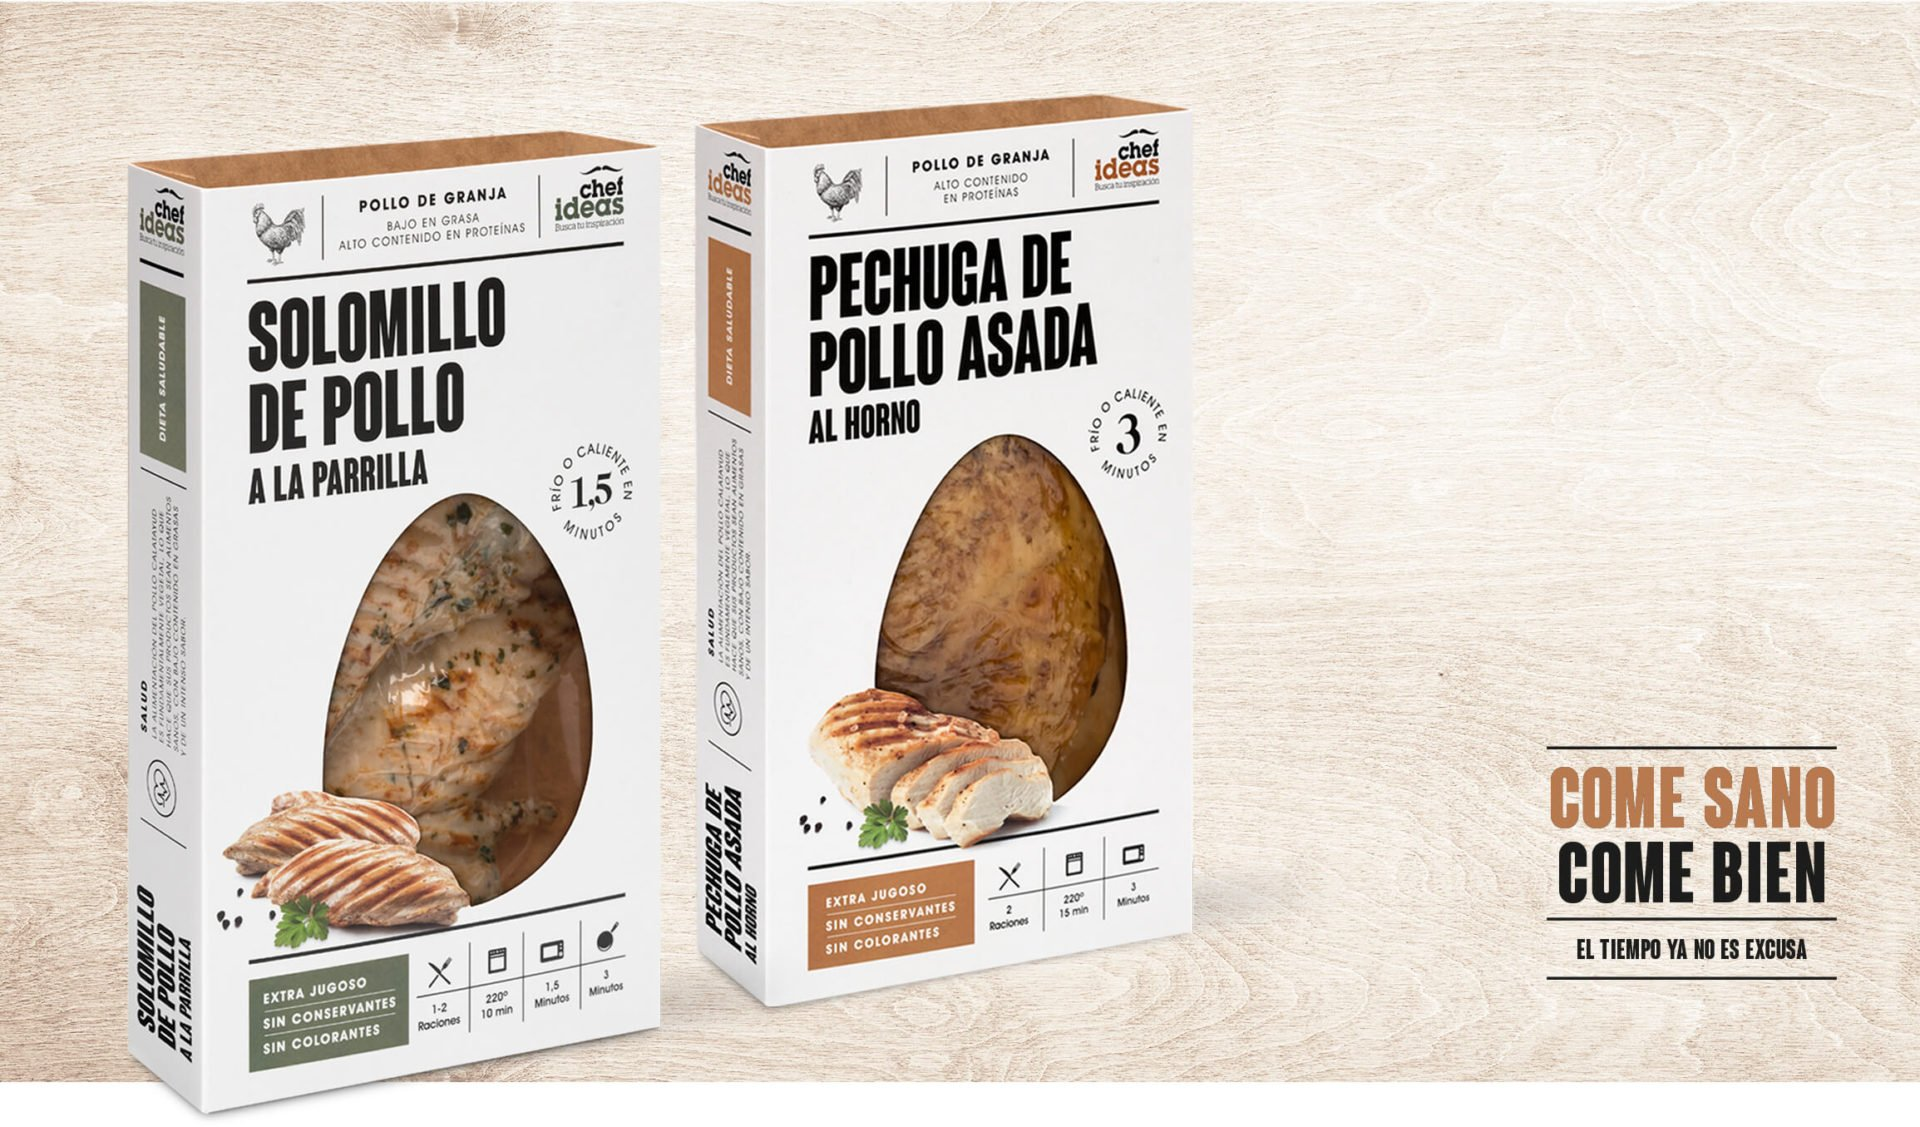 diseño-packaging-asados-chef-ideas-solomillo-pechuga-pollo-granja-calatayud